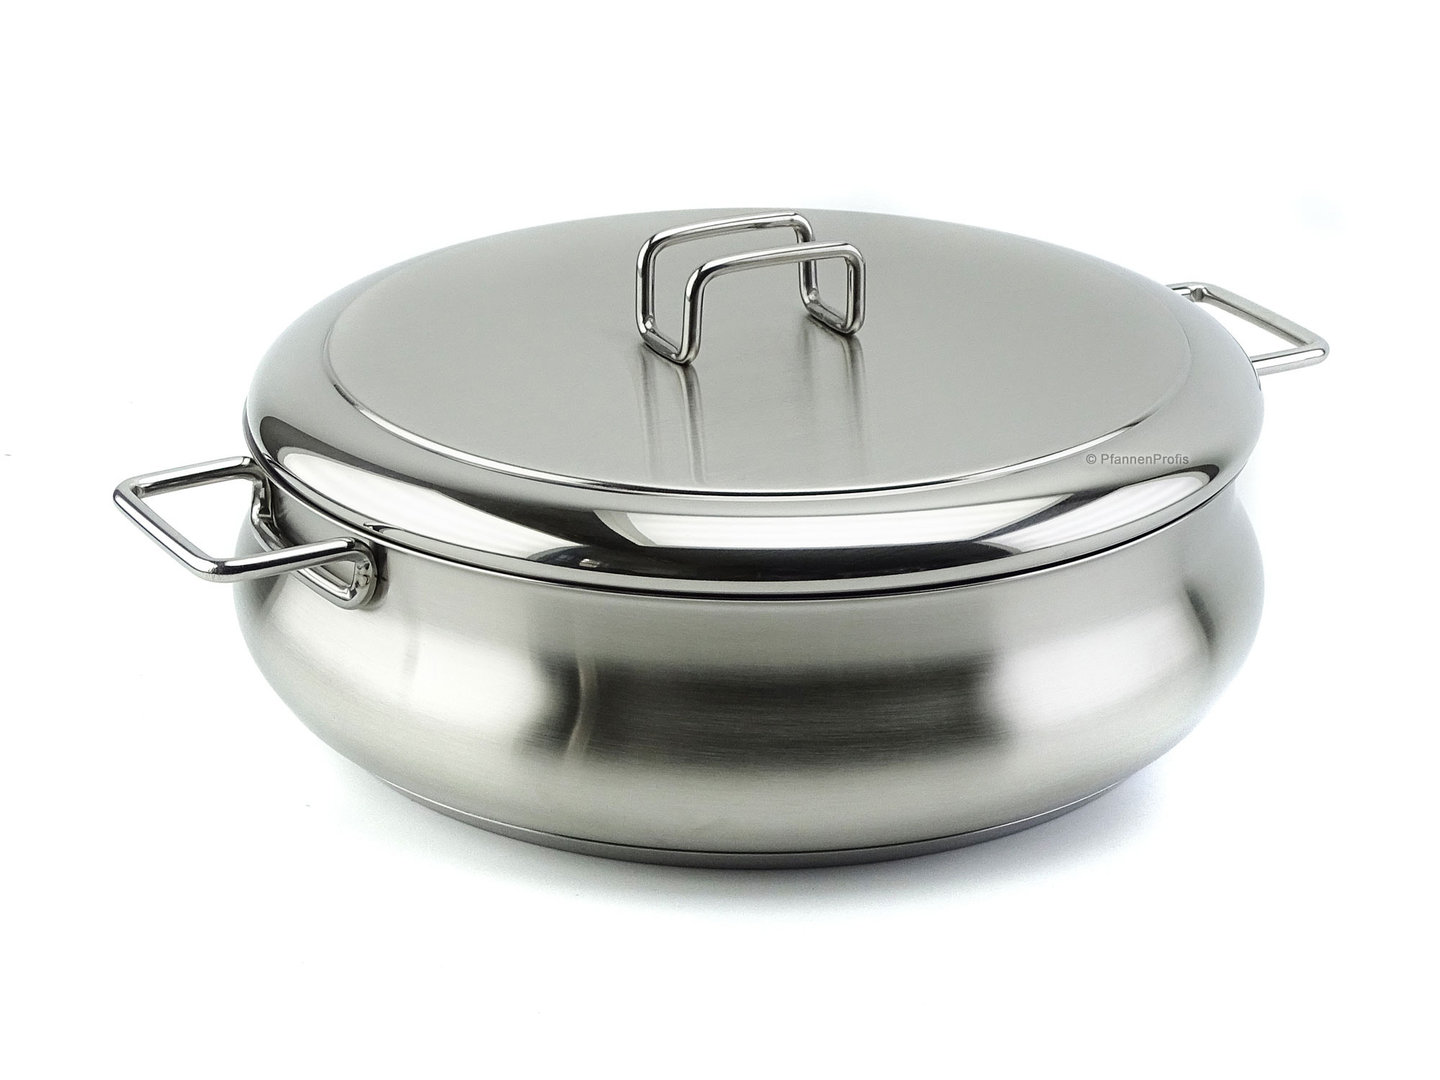 BARAZZONI shallow casserole TUMMY stainless steel 26 cm with lid 3.8 L